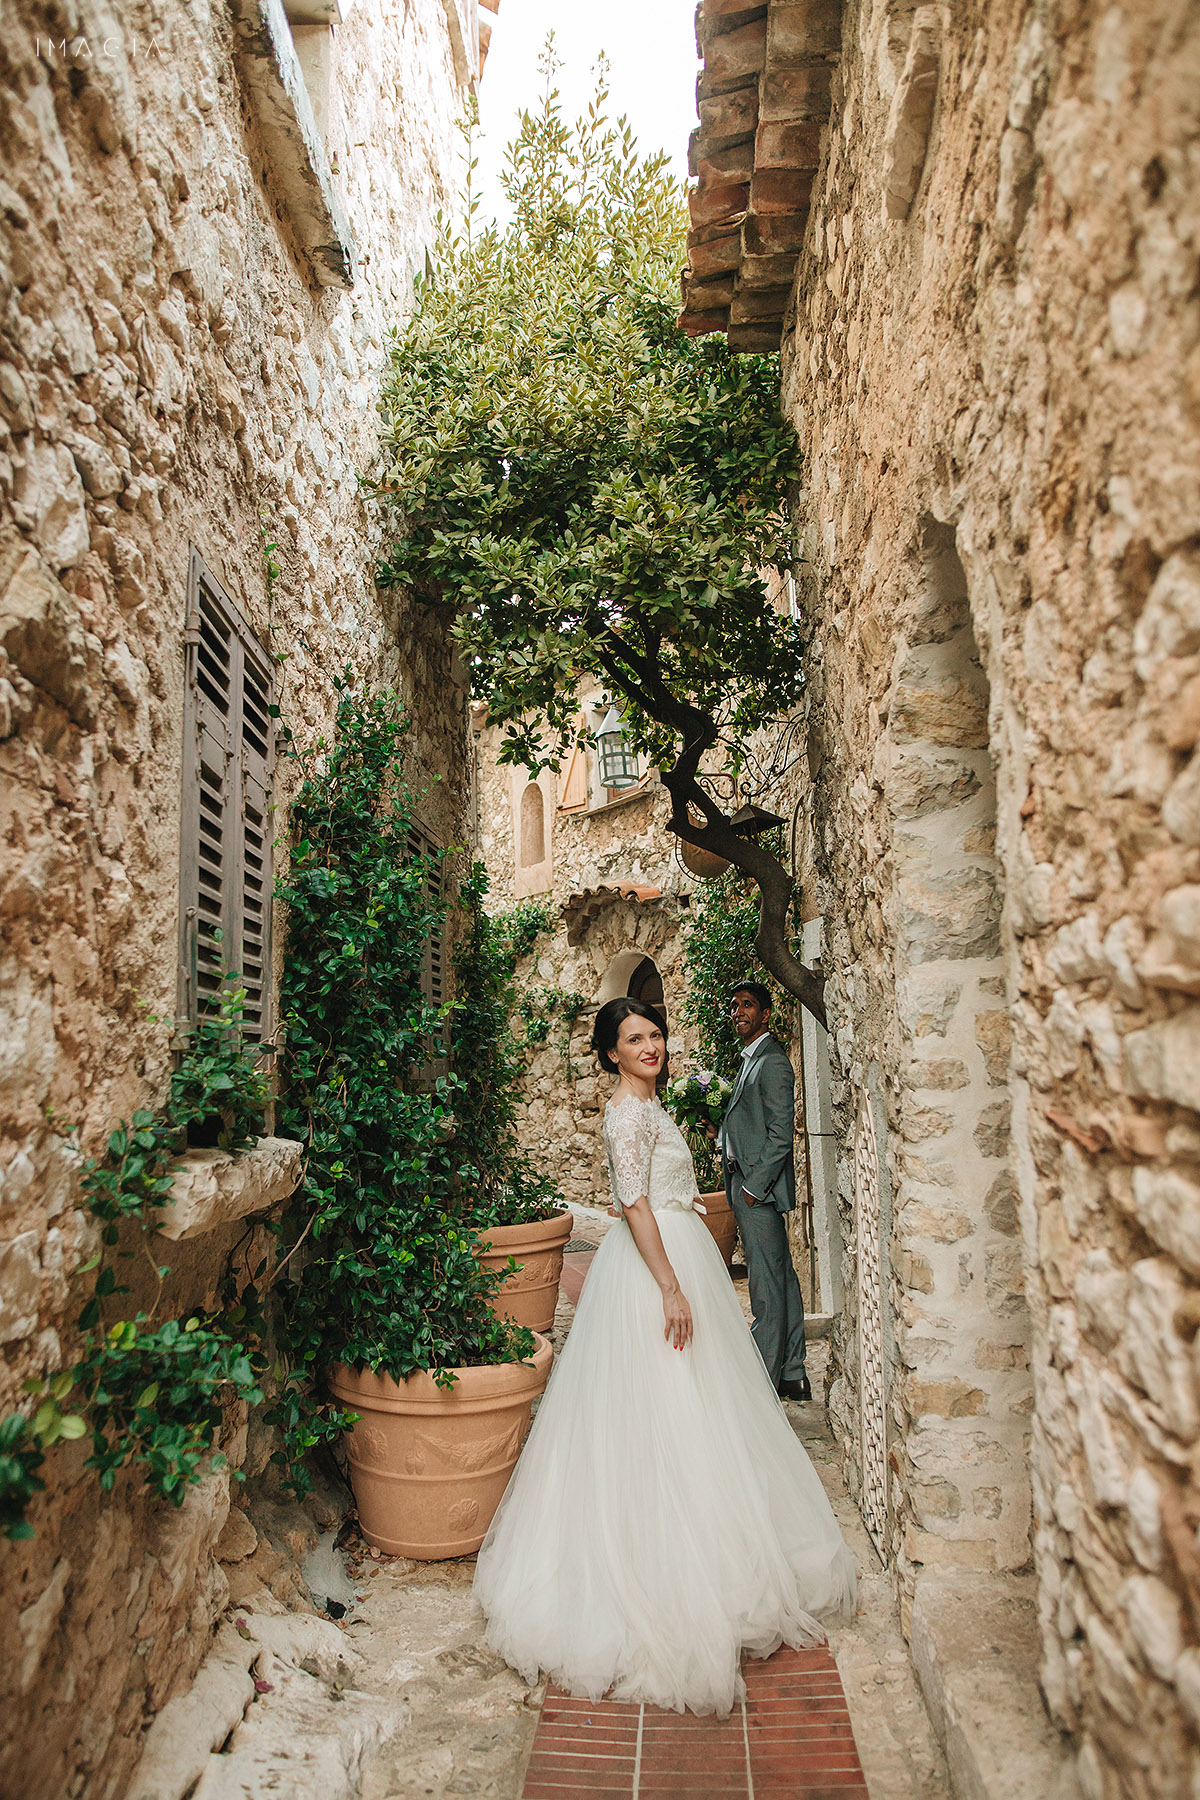 After-wedding photo session on French Riviera - Côte d'Azur